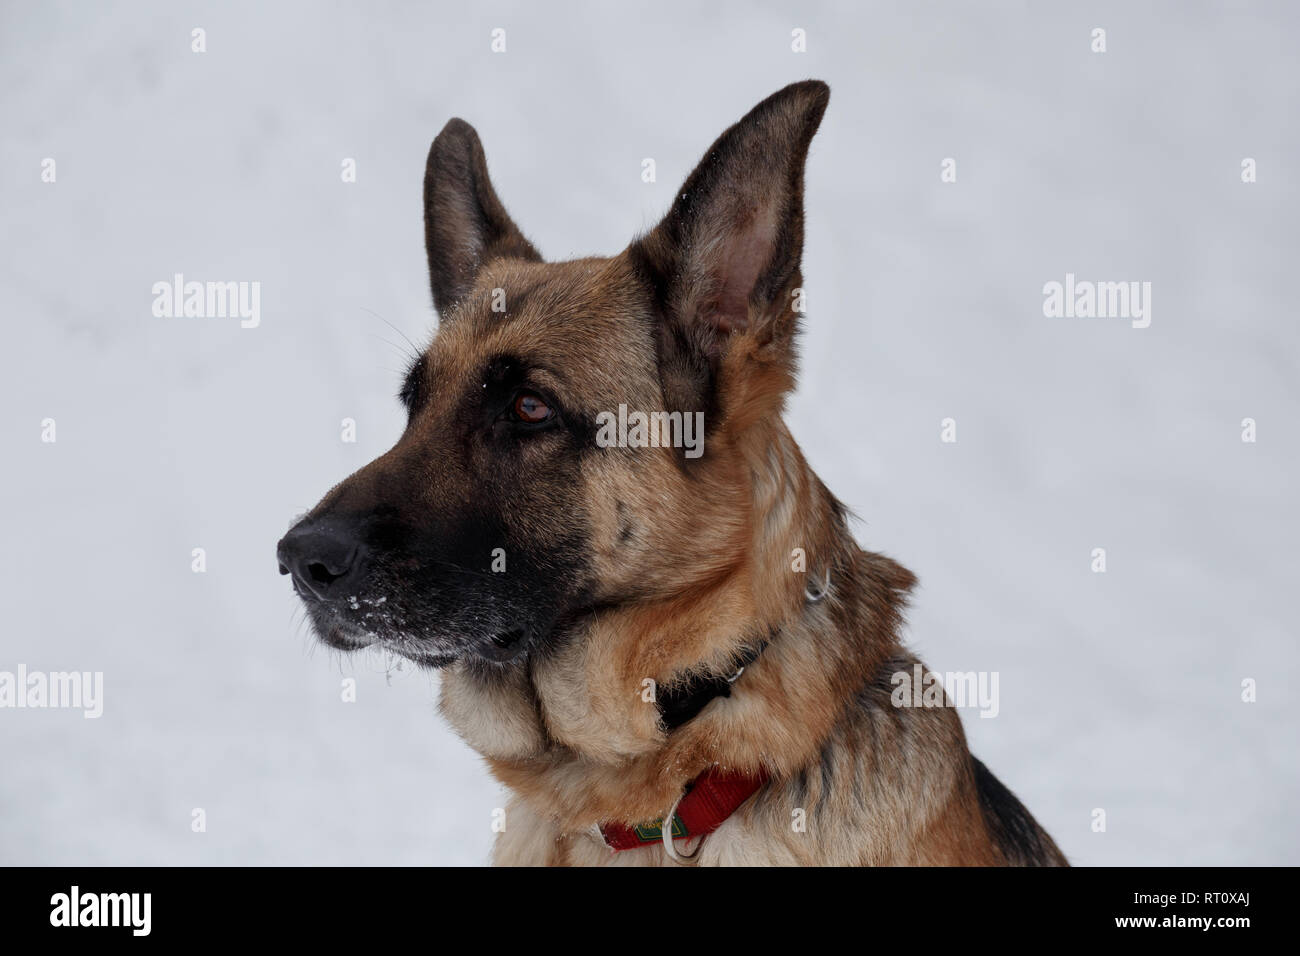 German shepherd with black mask close up. Pet animals. Purebred dog. - Stock Image